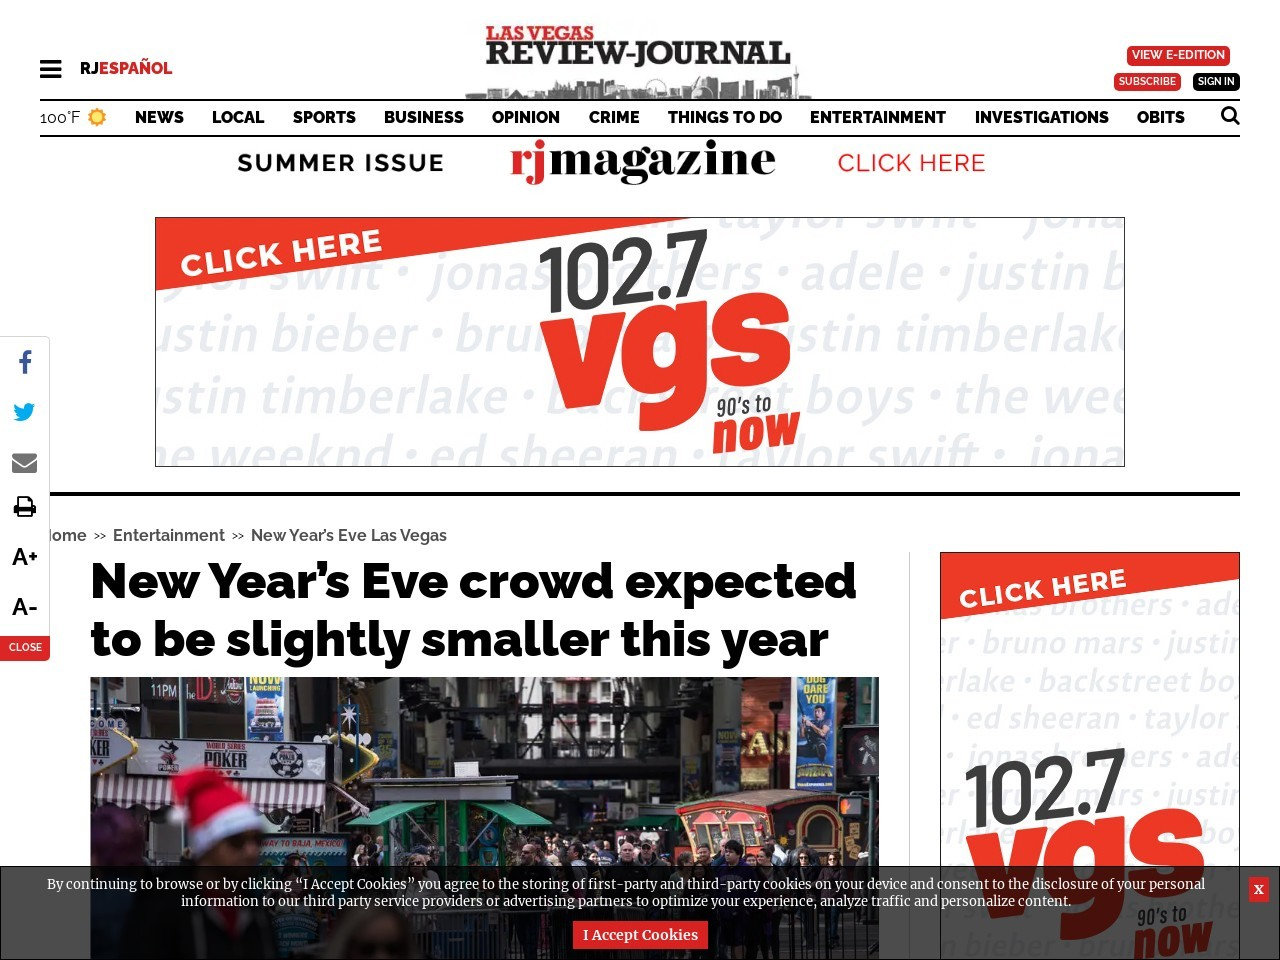 New Year's Eve crowd expected to be slightly smaller this year